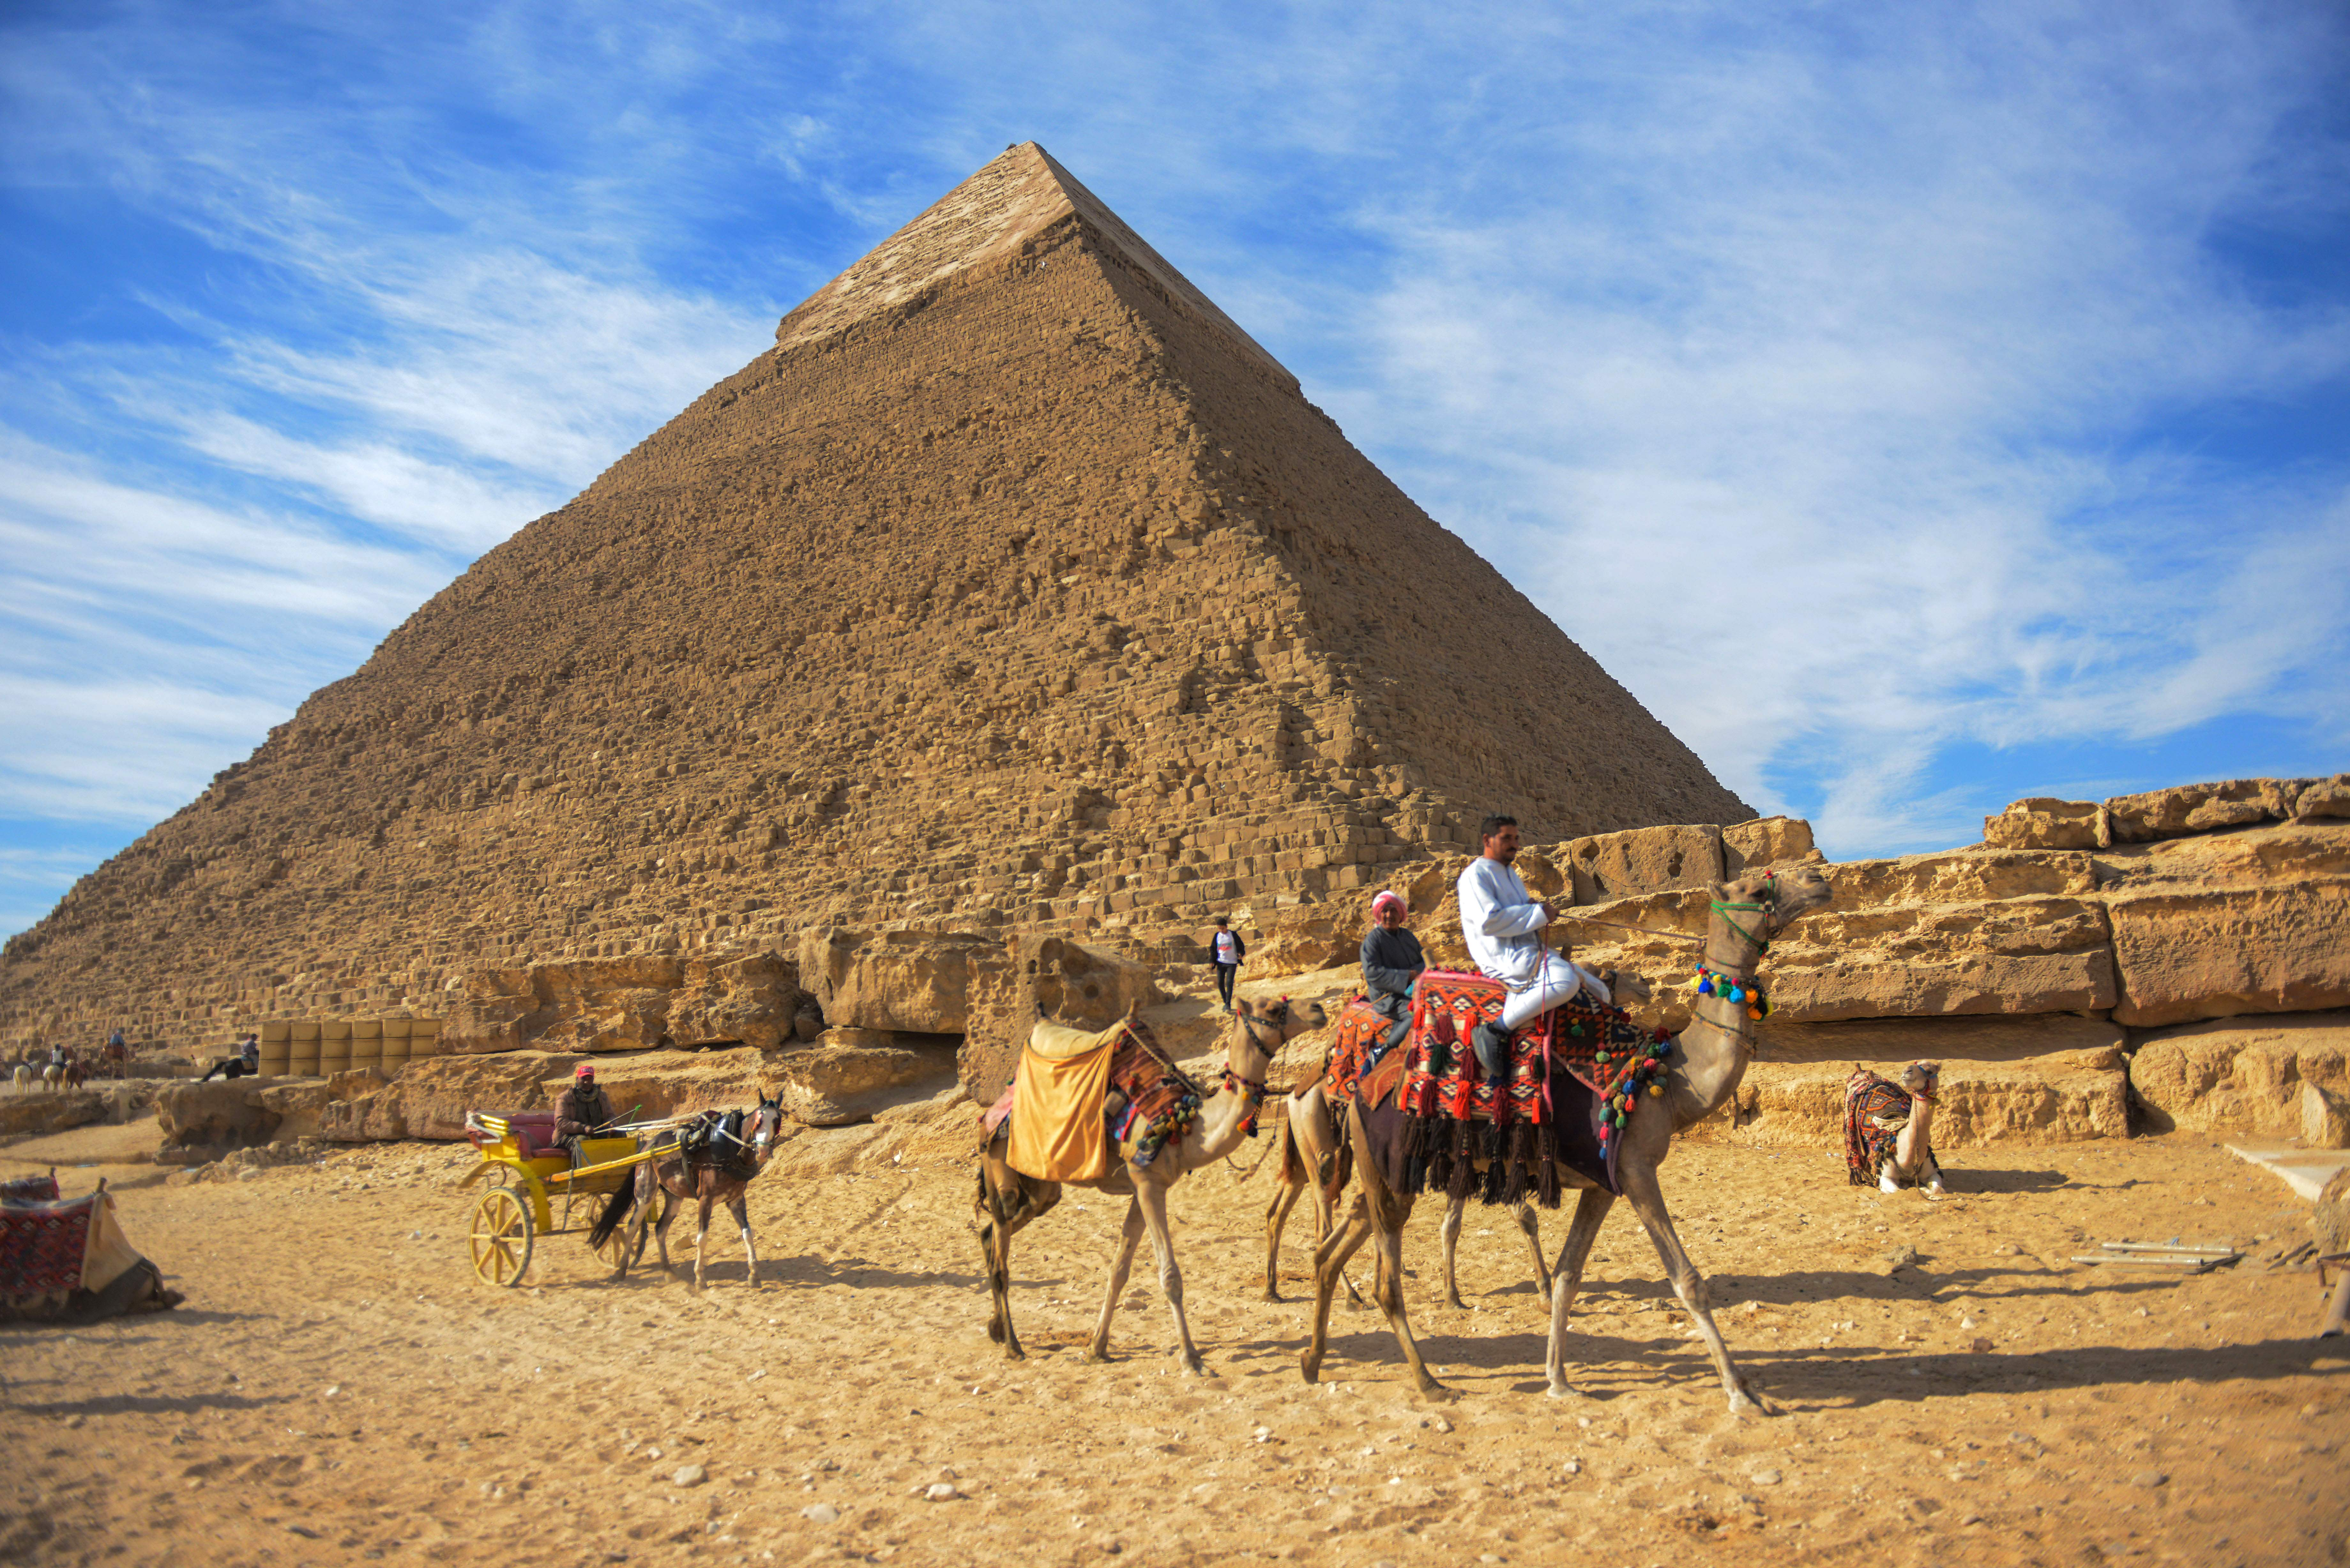 A picture taken on December 6, 2017 shows a view of the pyramid of Khafre on the Giza Plateau.